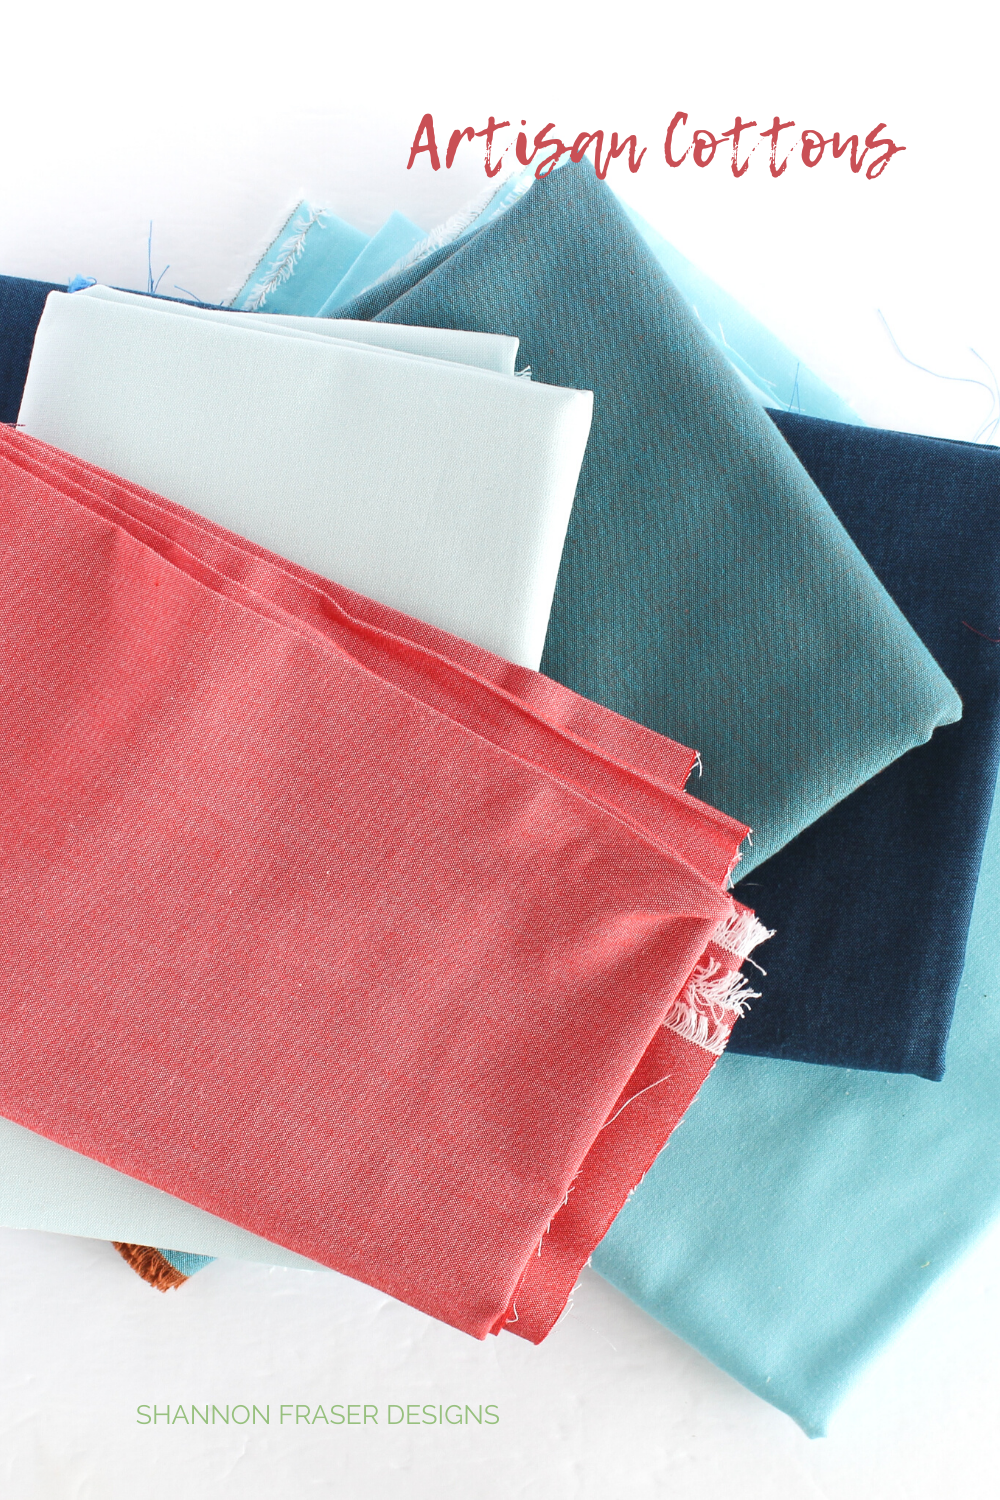 Artisan Cottons in coral, light blue, turquoise, teal and navy featured in the Shattered Star quilt   Shannon Fraser Designs #quiltingcotton